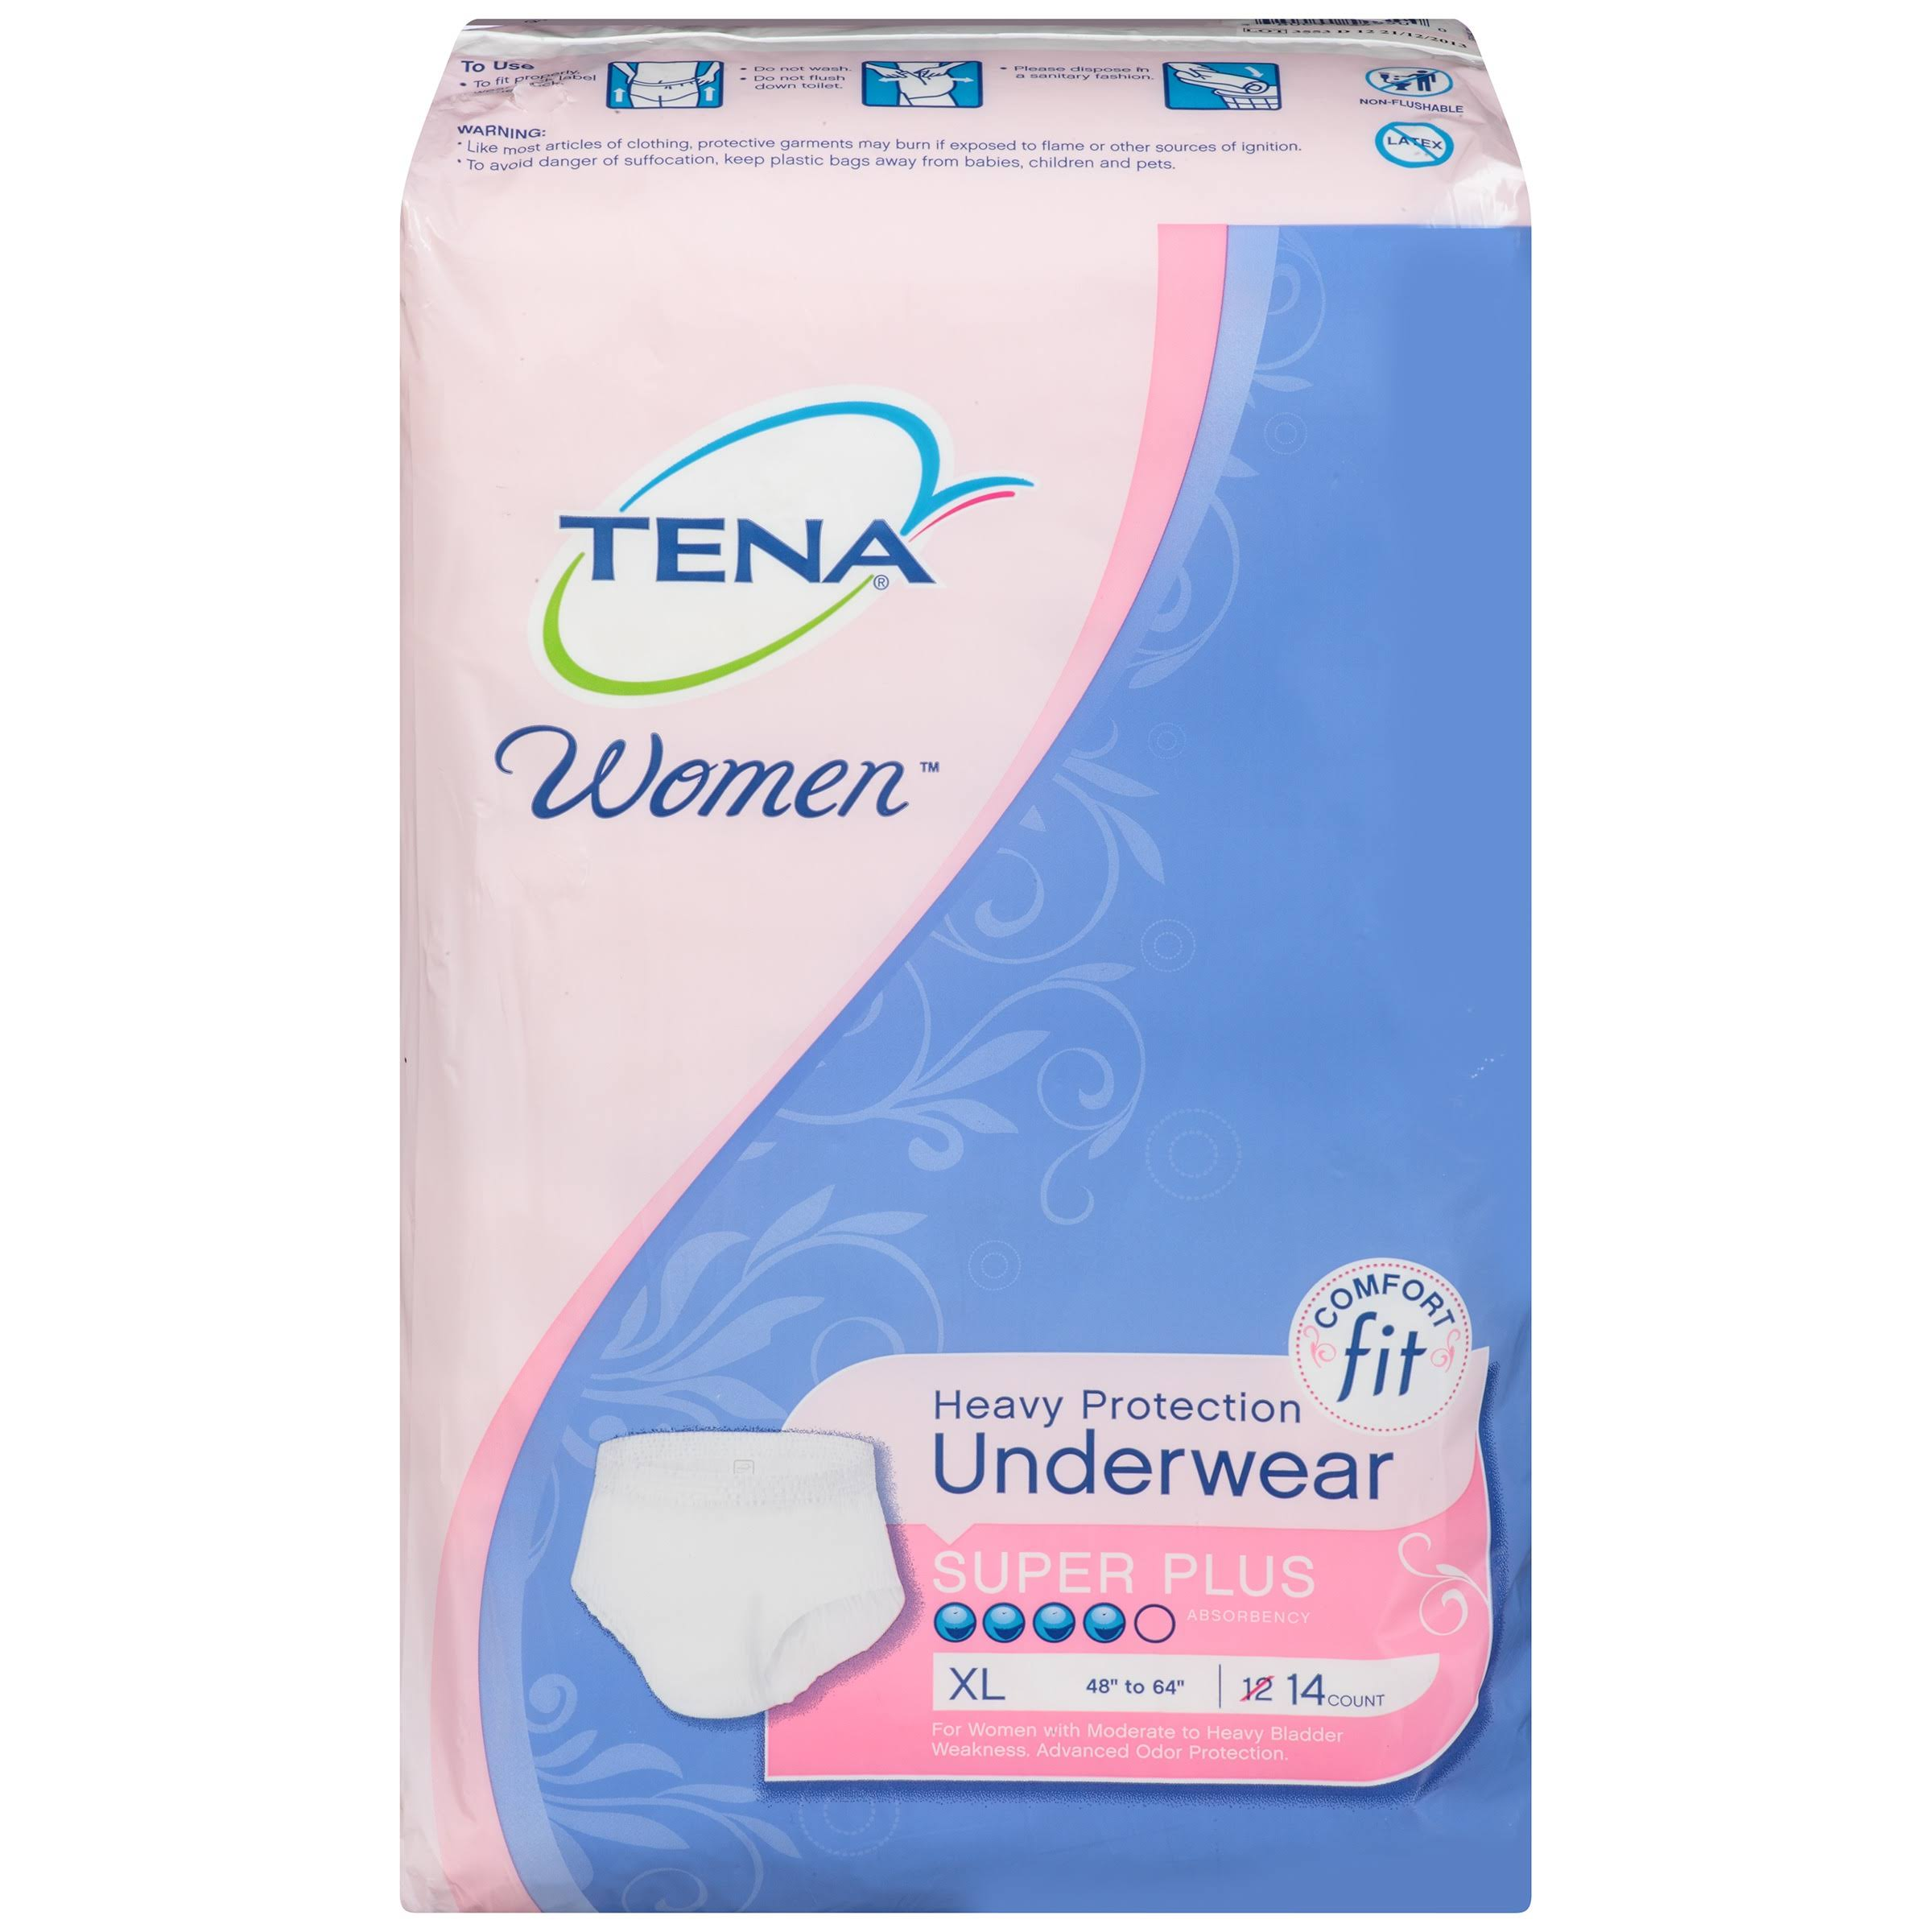 Tena Women Heavy Protection Underwear - X-Large, 14pk